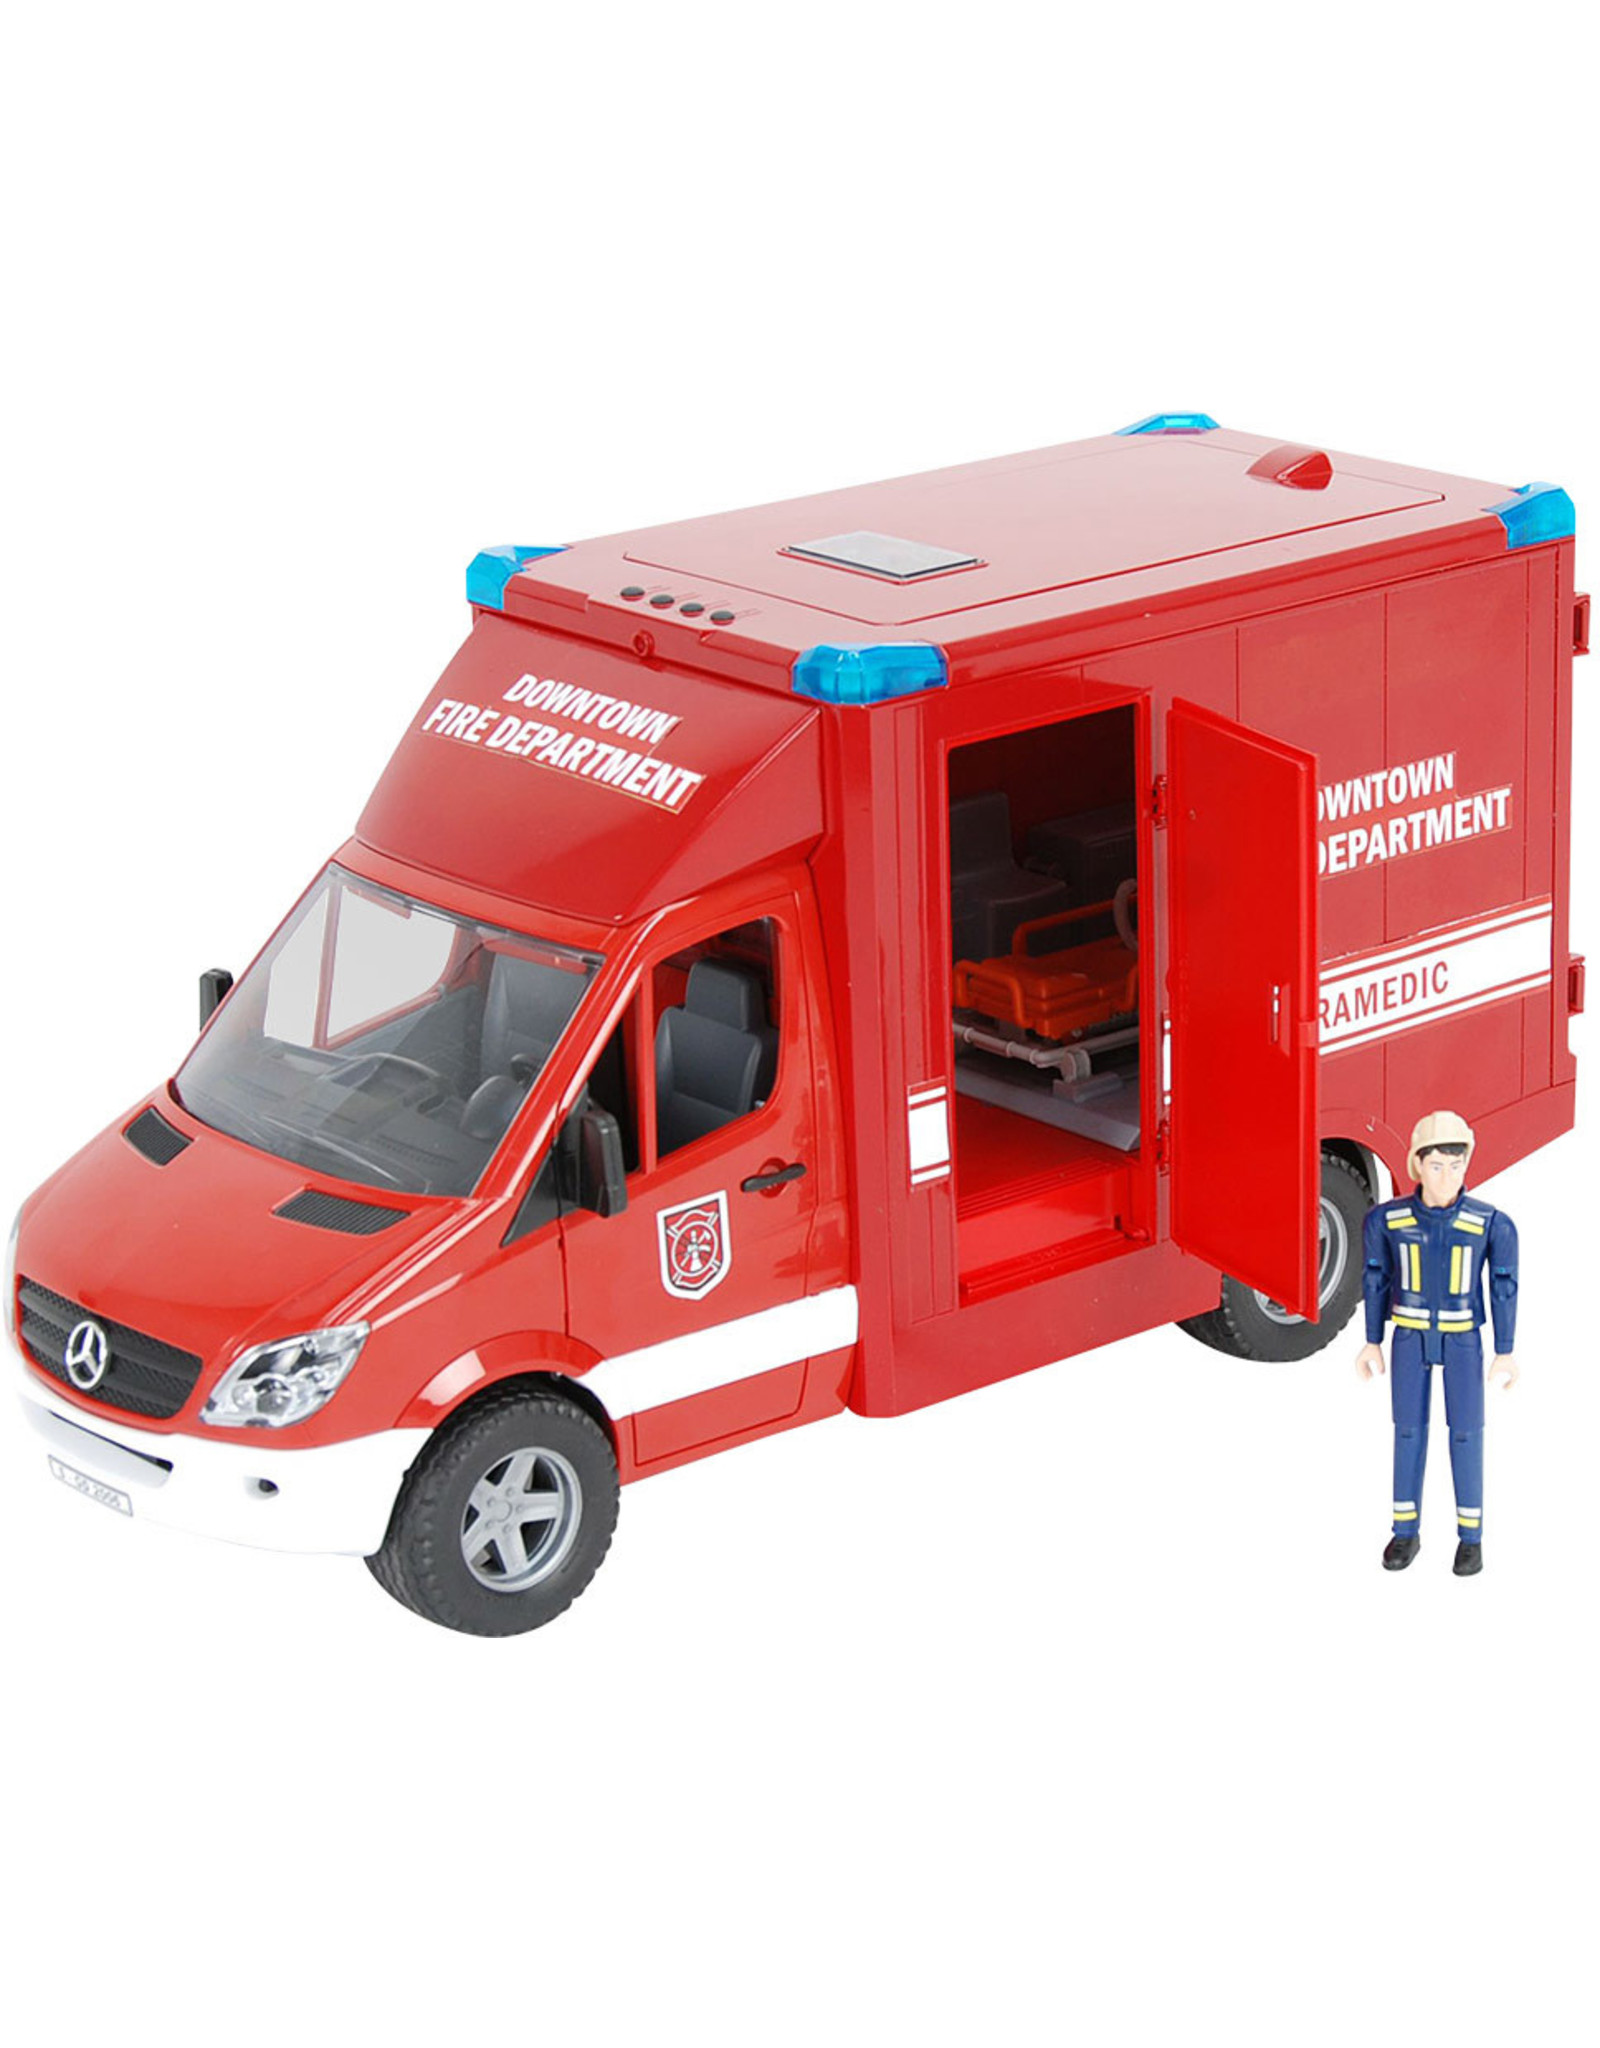 Bruder Toys America Inc MB Sprinter Fire Department Paramedic with Driver and Accessories